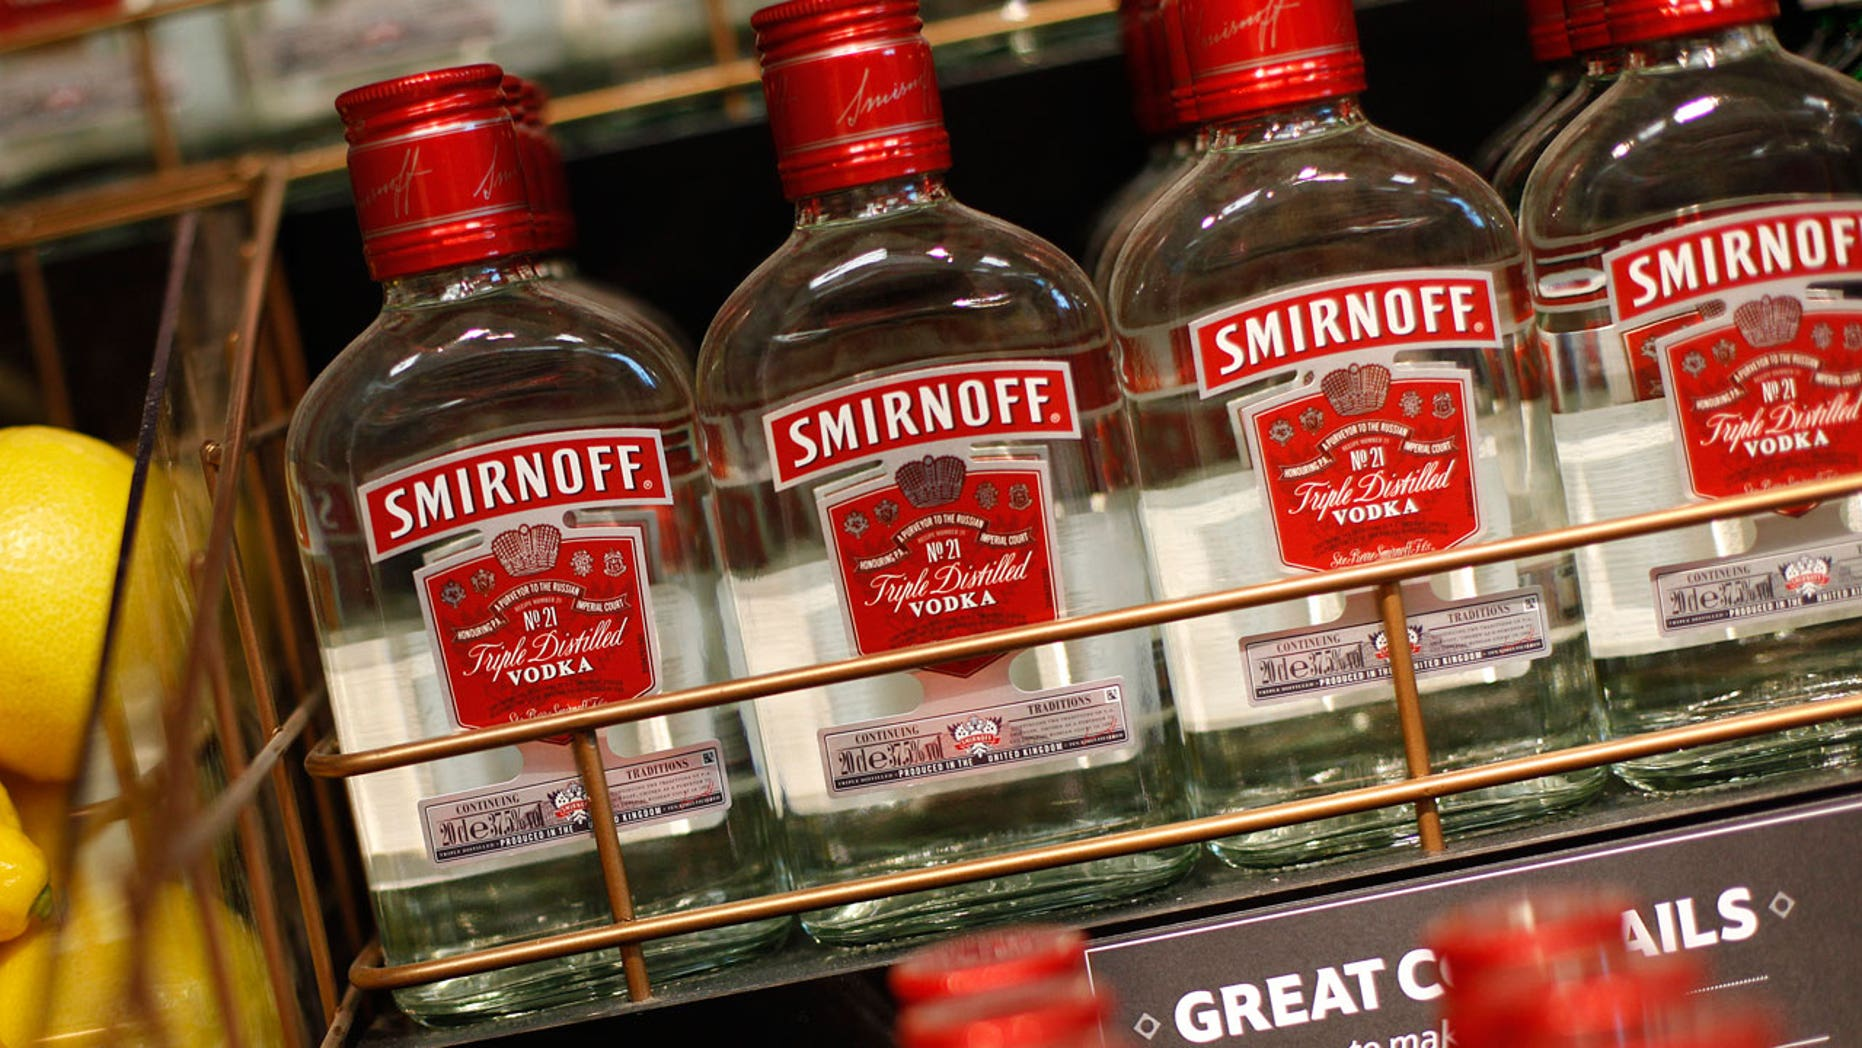 The makers of Smirnoff vodka are taking a jab at Trump.